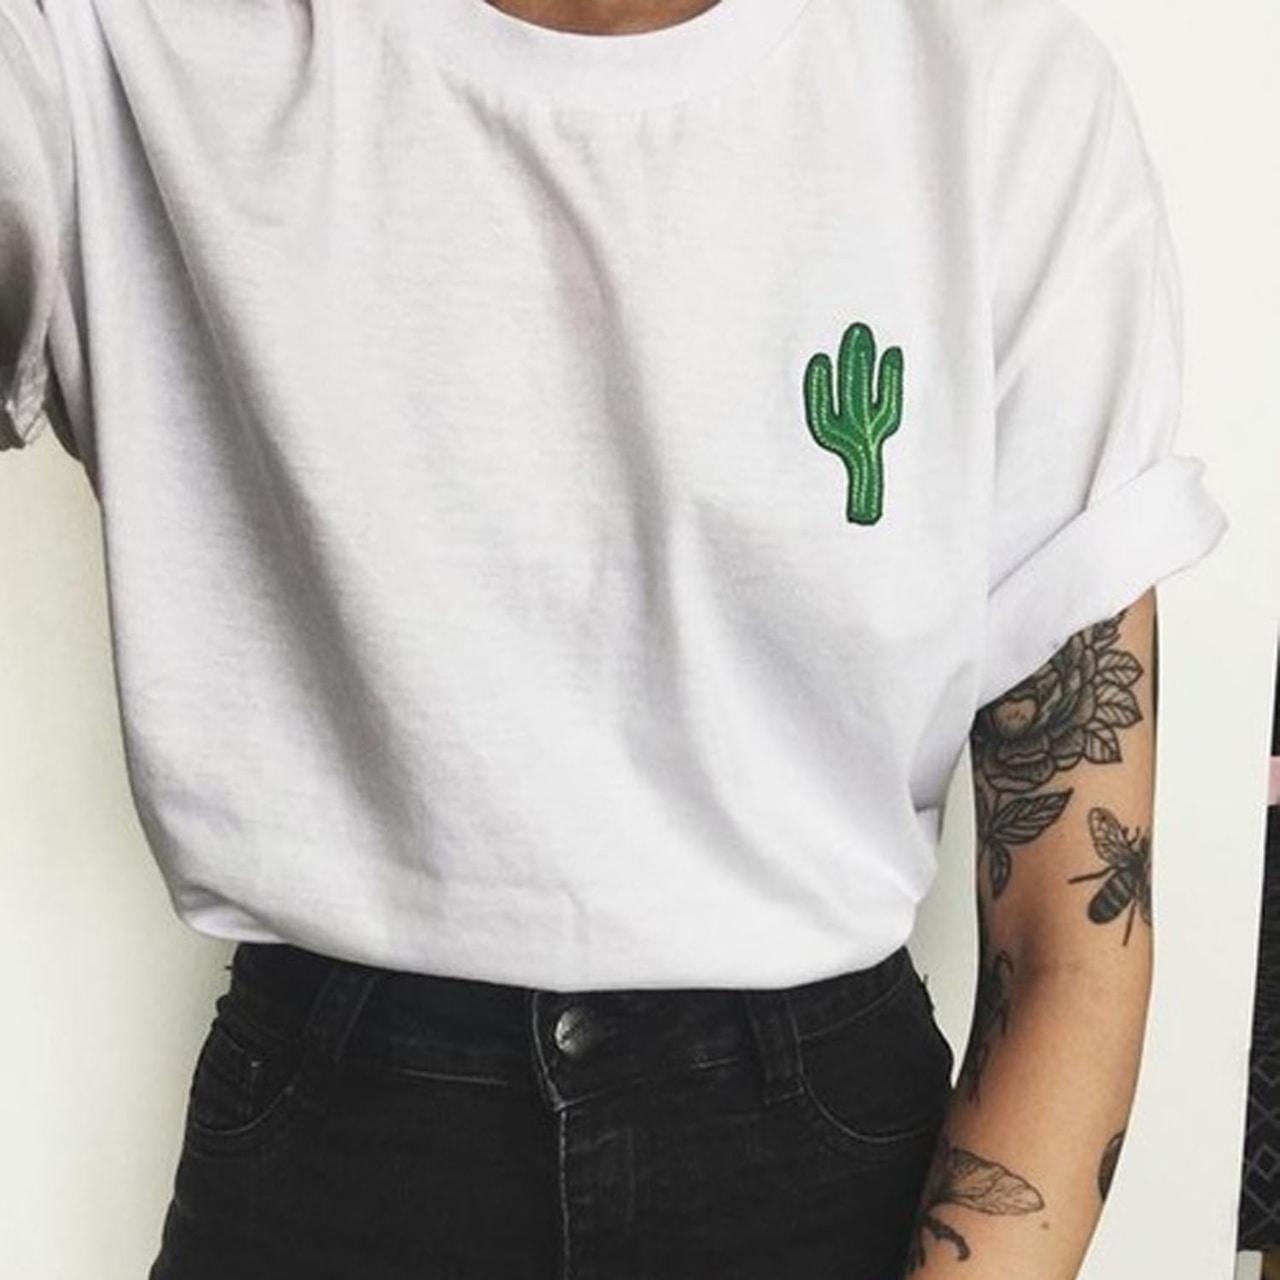 My Clothing Aesthetics On We Heart It You may think, there's no specific aesthetic it's just aesthetic. my clothing aesthetics on we heart it